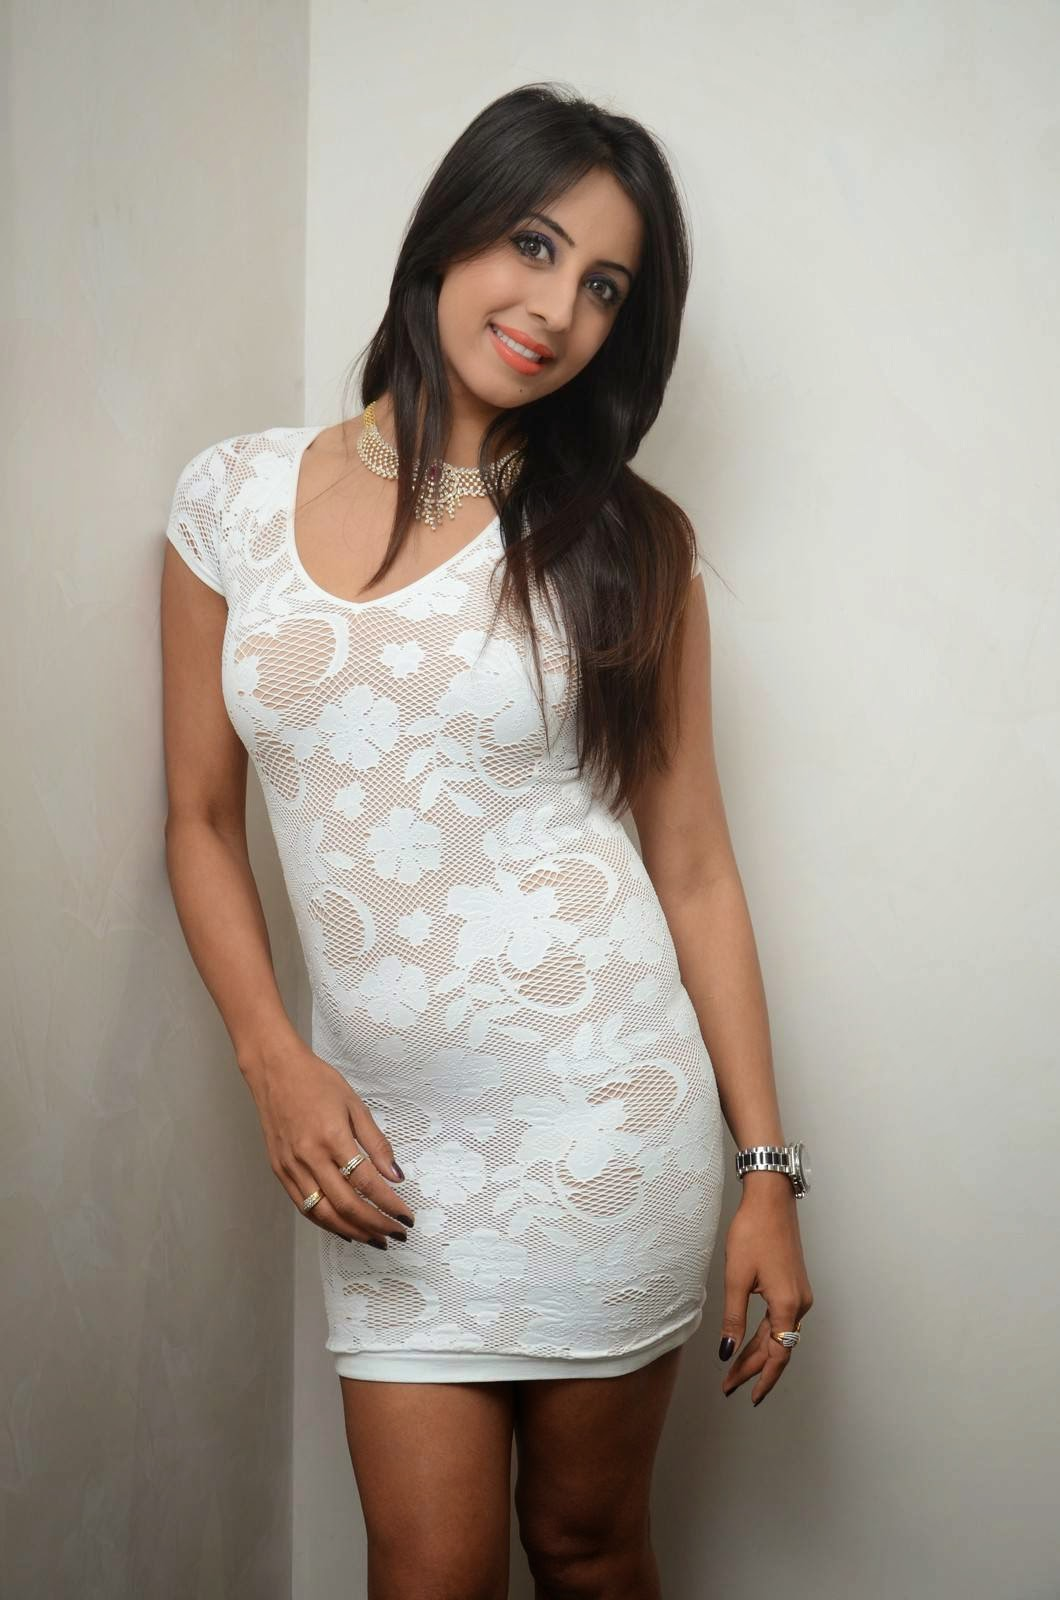 Actress Sanjjanaa Latest Cute Hot White Mini Skirt Dress Spicy Thighs Show Photos Gallery At Sapphire Spa Launch